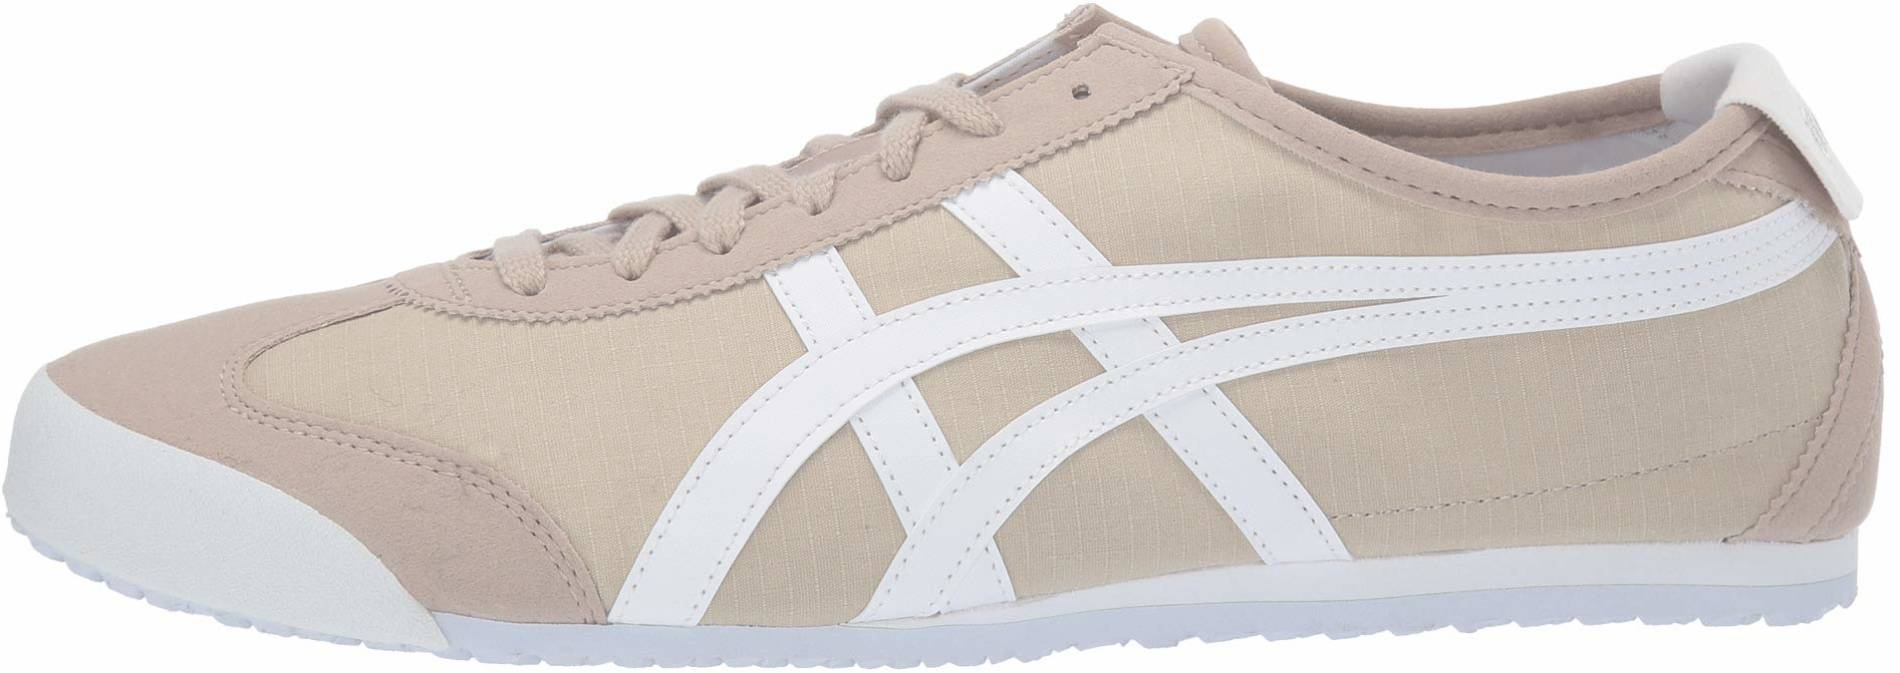 onitsuka tiger mexico 66 shoes online opiniones homeopatia